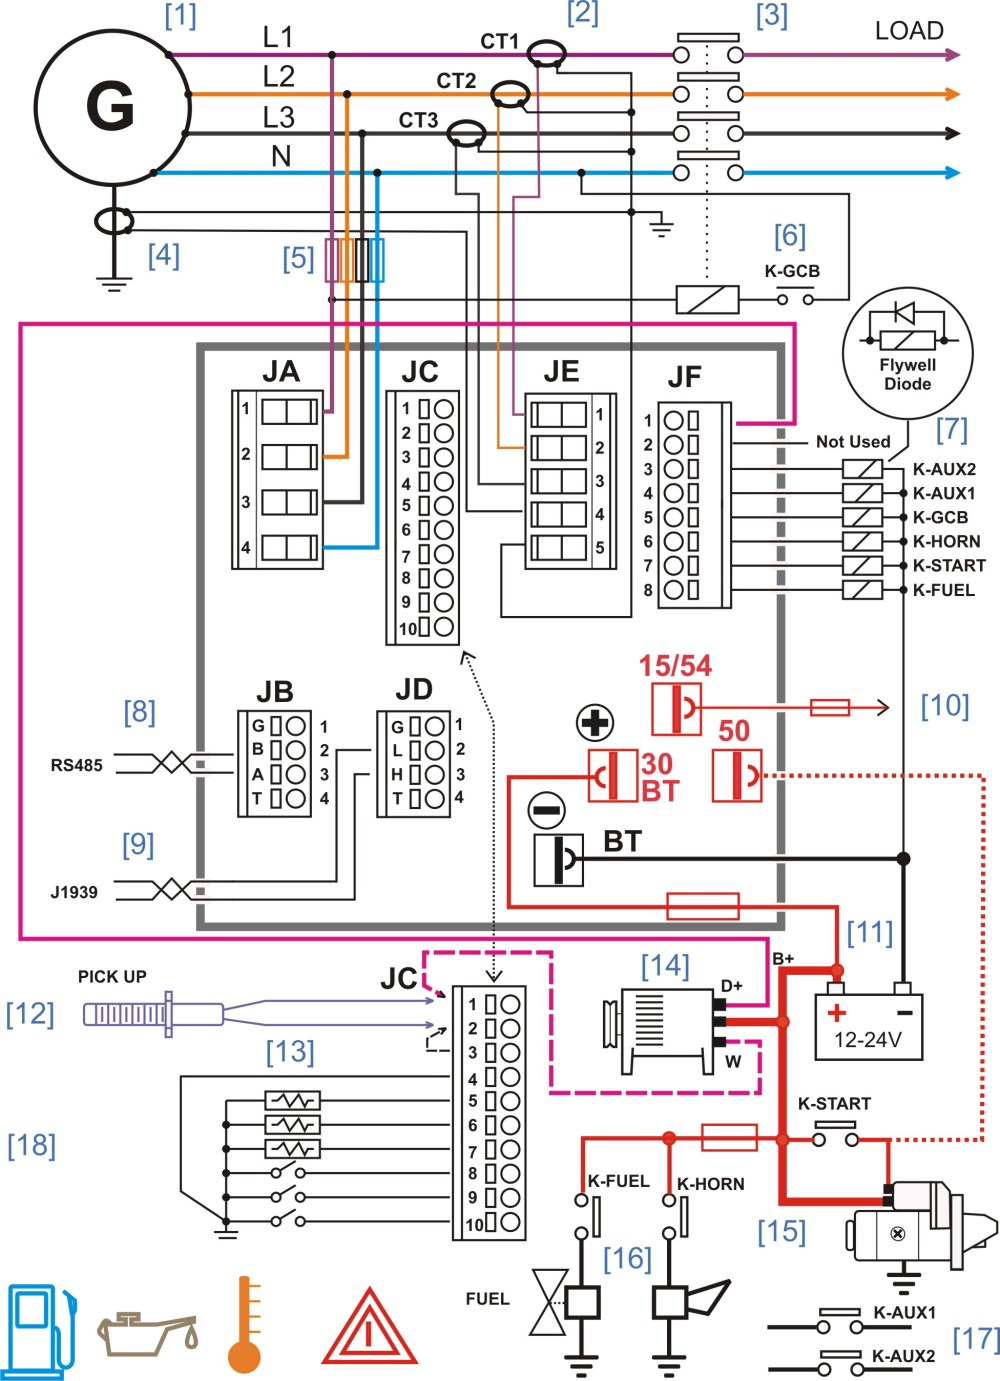 medium resolution of generator controller wiring diagram generator controllers generator wiring diagram 3 phase generator controller wiring diagram